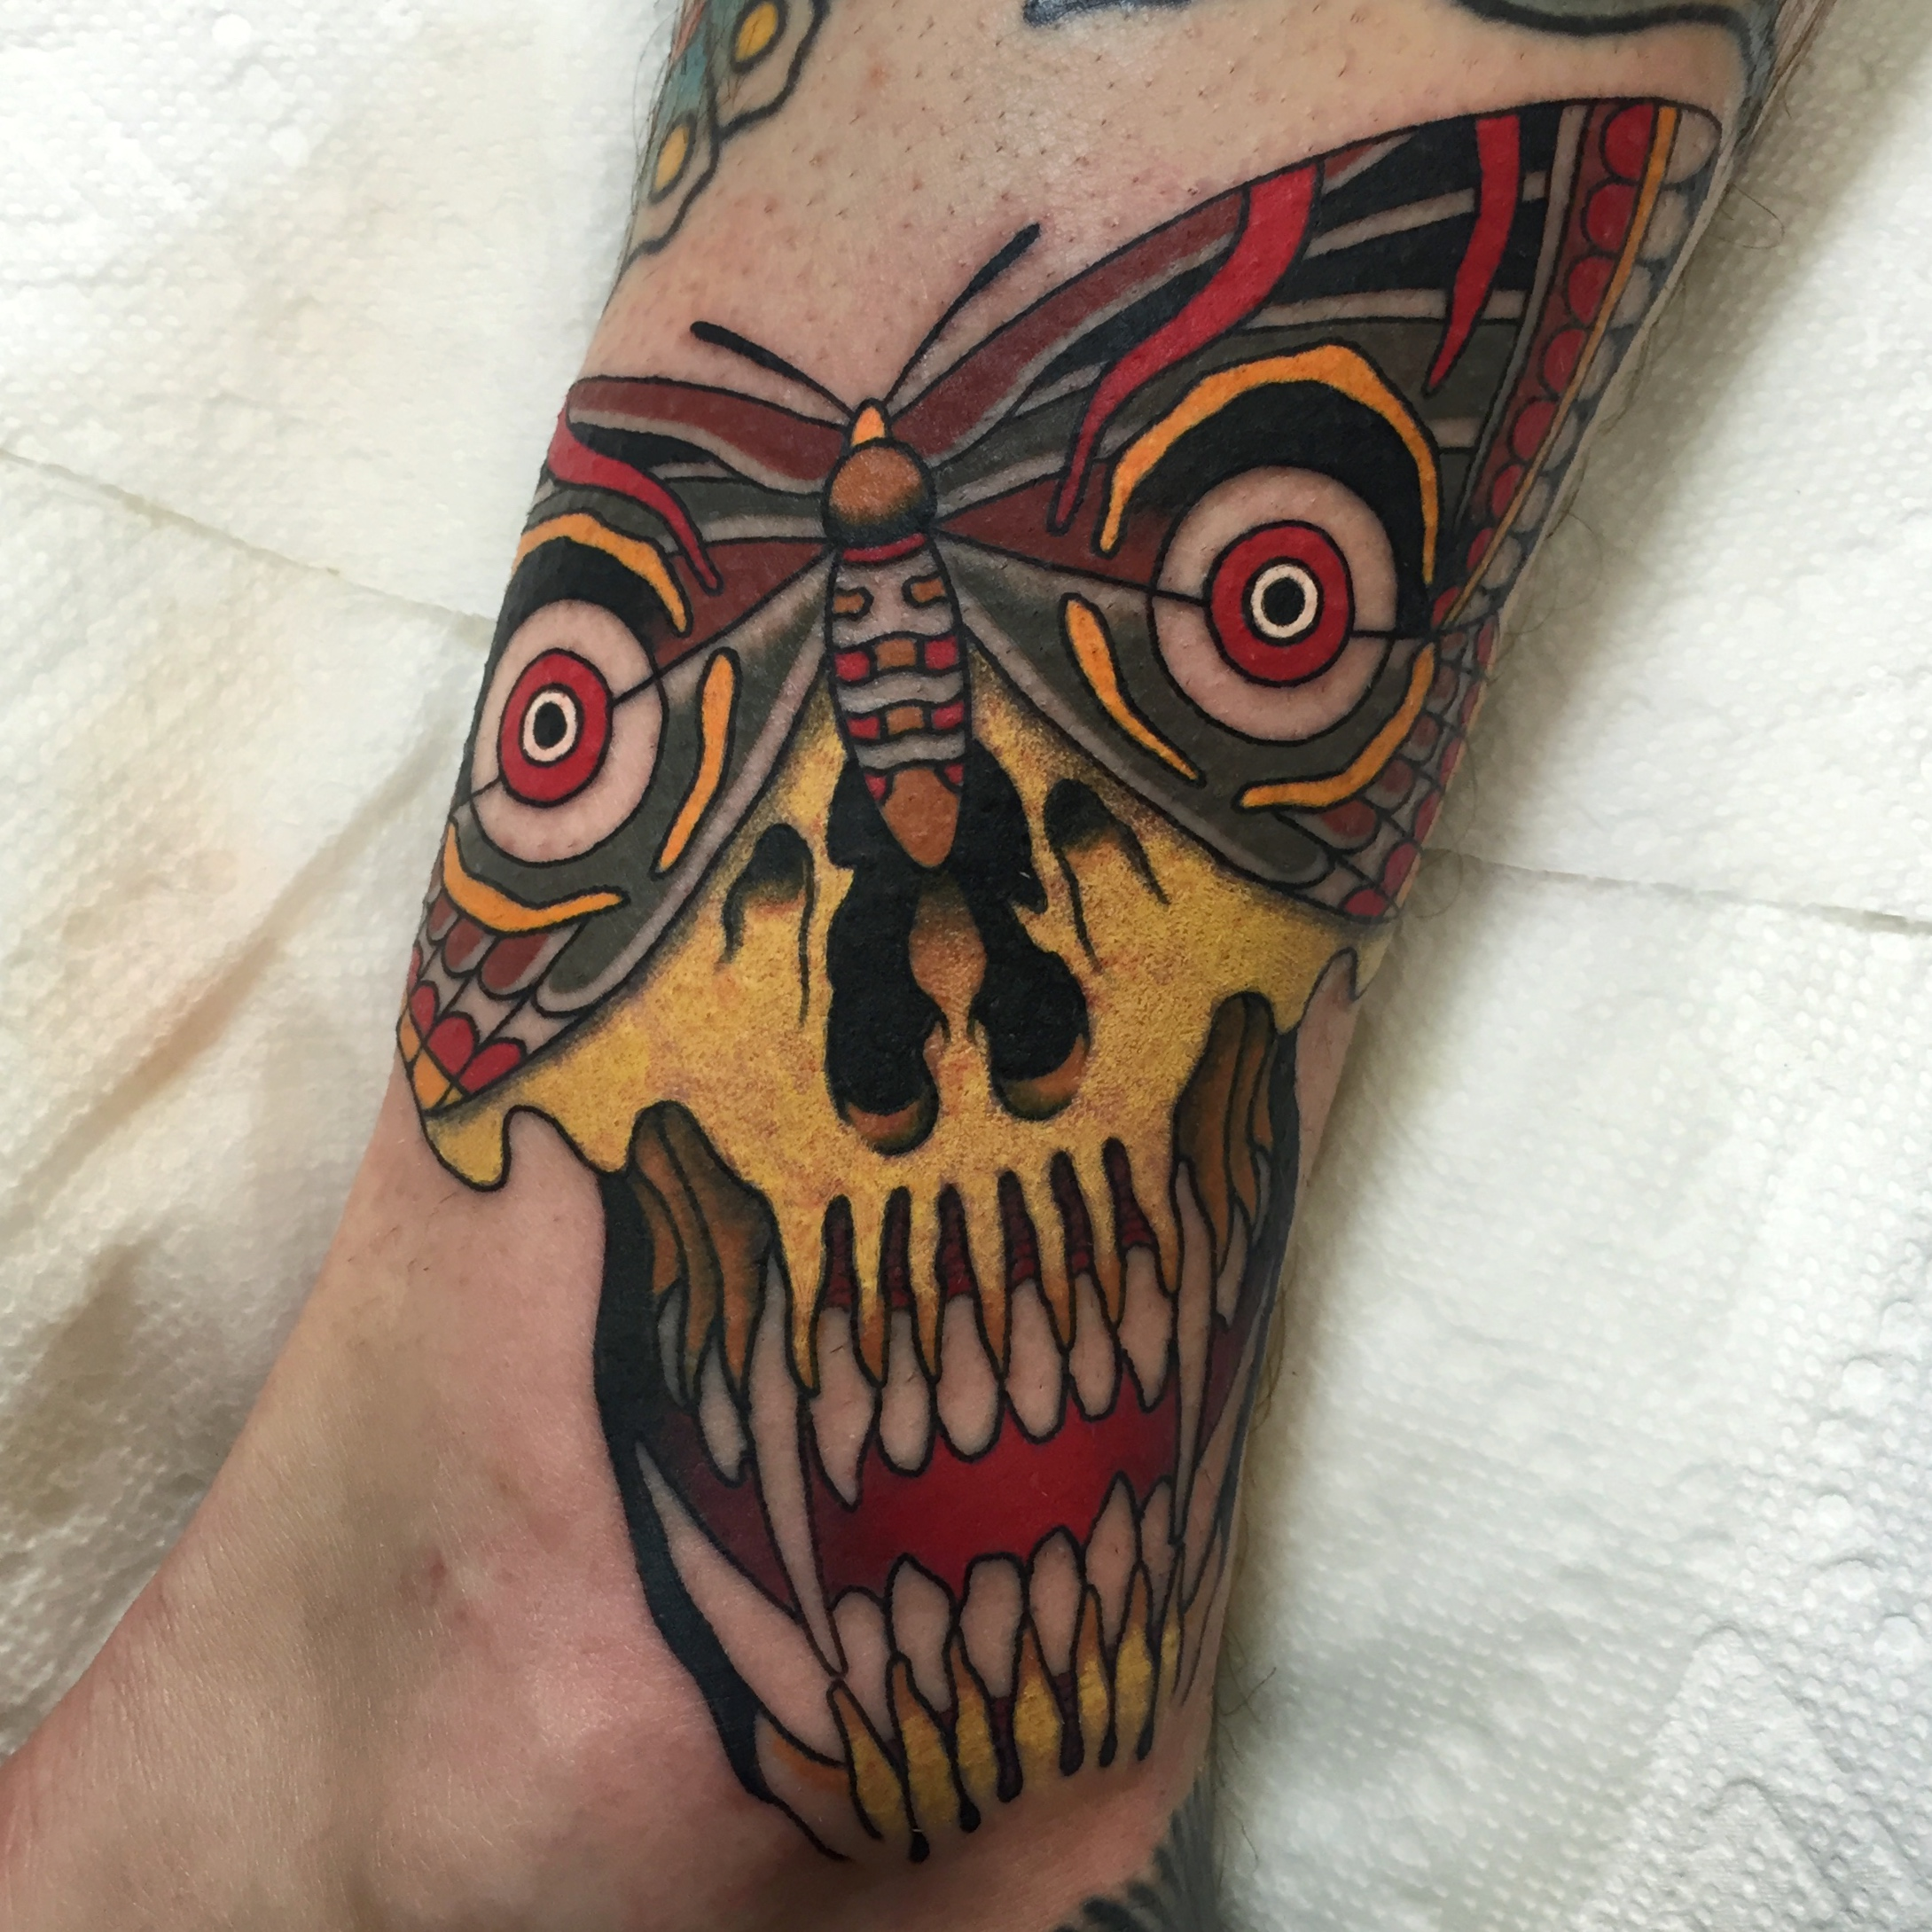 Moth Turning To Skull Tattoo